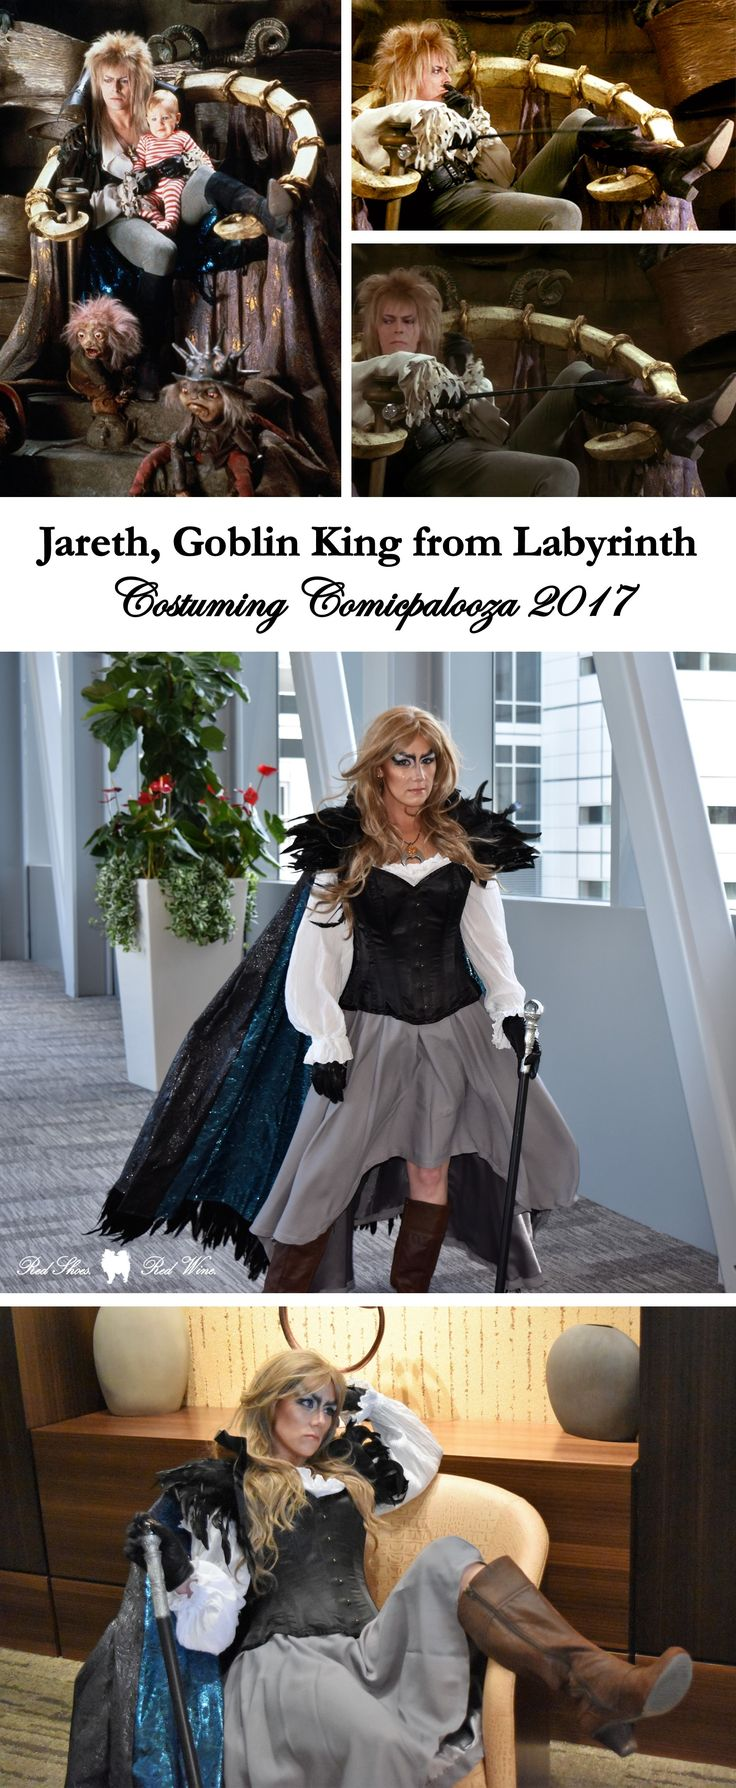 Costuming at Comicpalooza 2017: Jareth the Goblin King (Queen) from Labyrinth (Houston, DragonCon, Atlanta, comic, con, pop culture, Costuming, costume, cosplay, cosplayer, cosplaying, costumer, sew, sewing, hobby, hot glue, pattern, gender swap, gender bent, gender bend, femme, Sarah, Toby, babe, David Bowie, owl, dance magic dance)